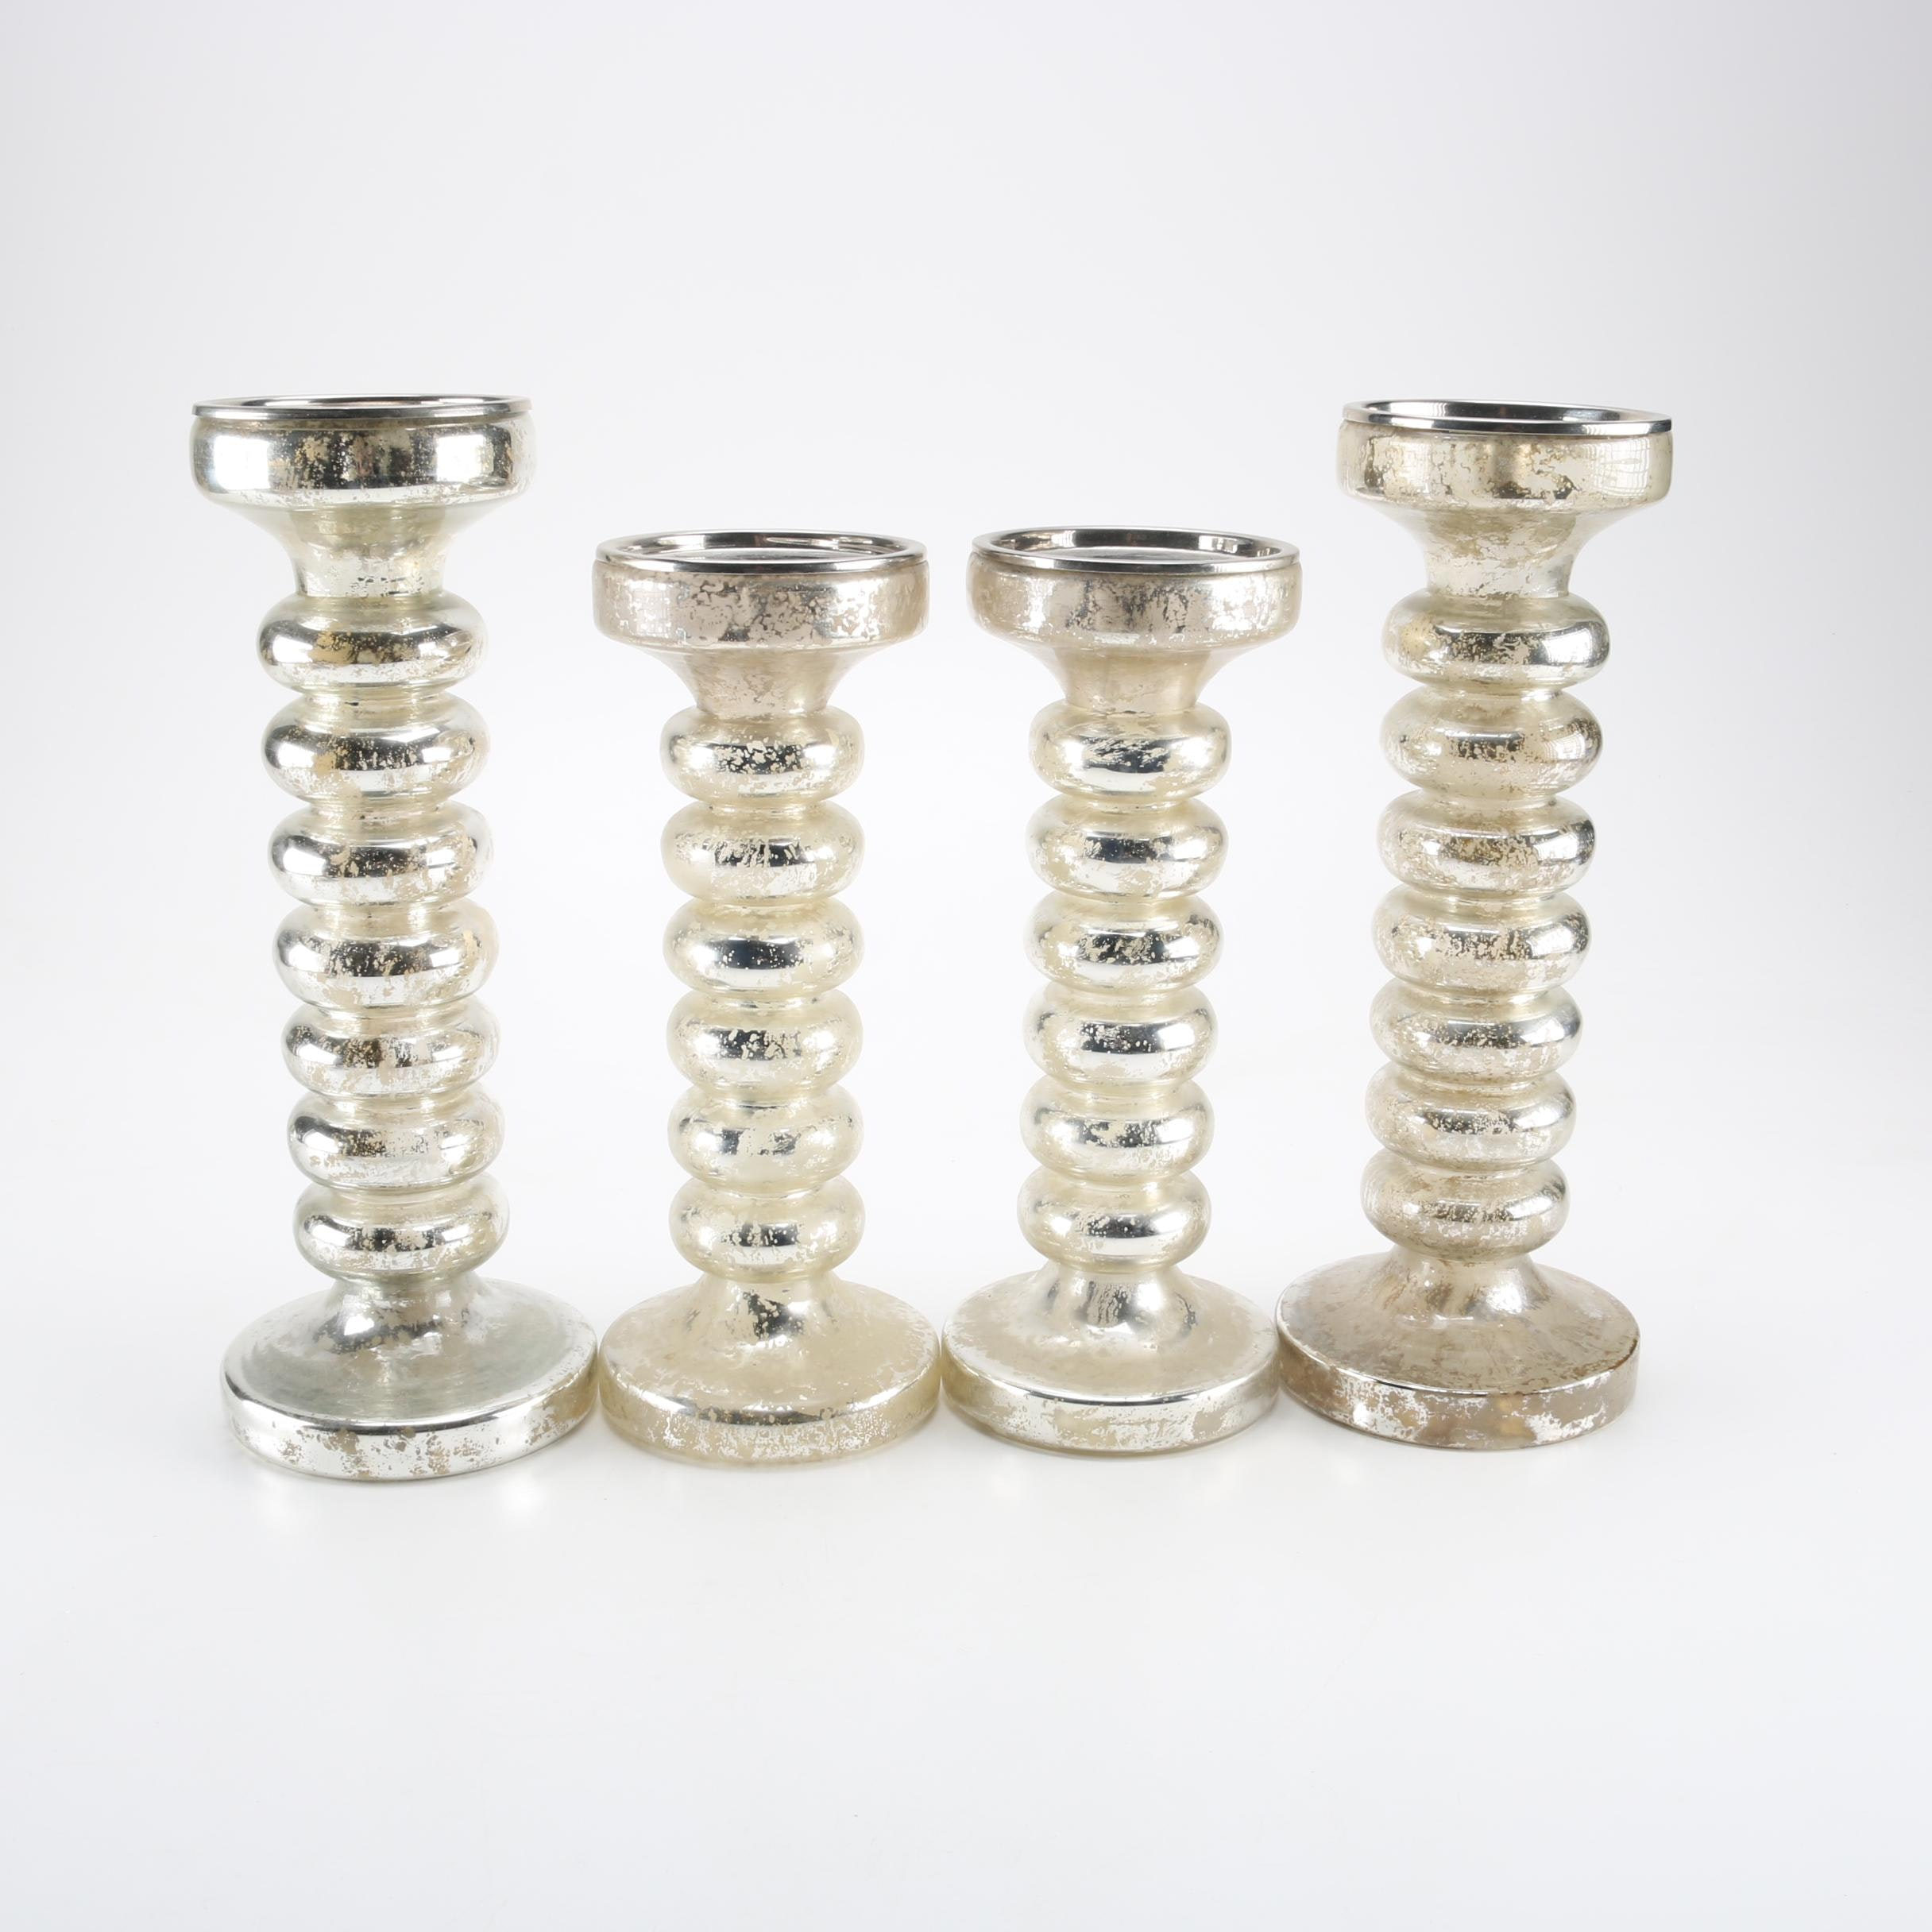 Turned Style Candleholders